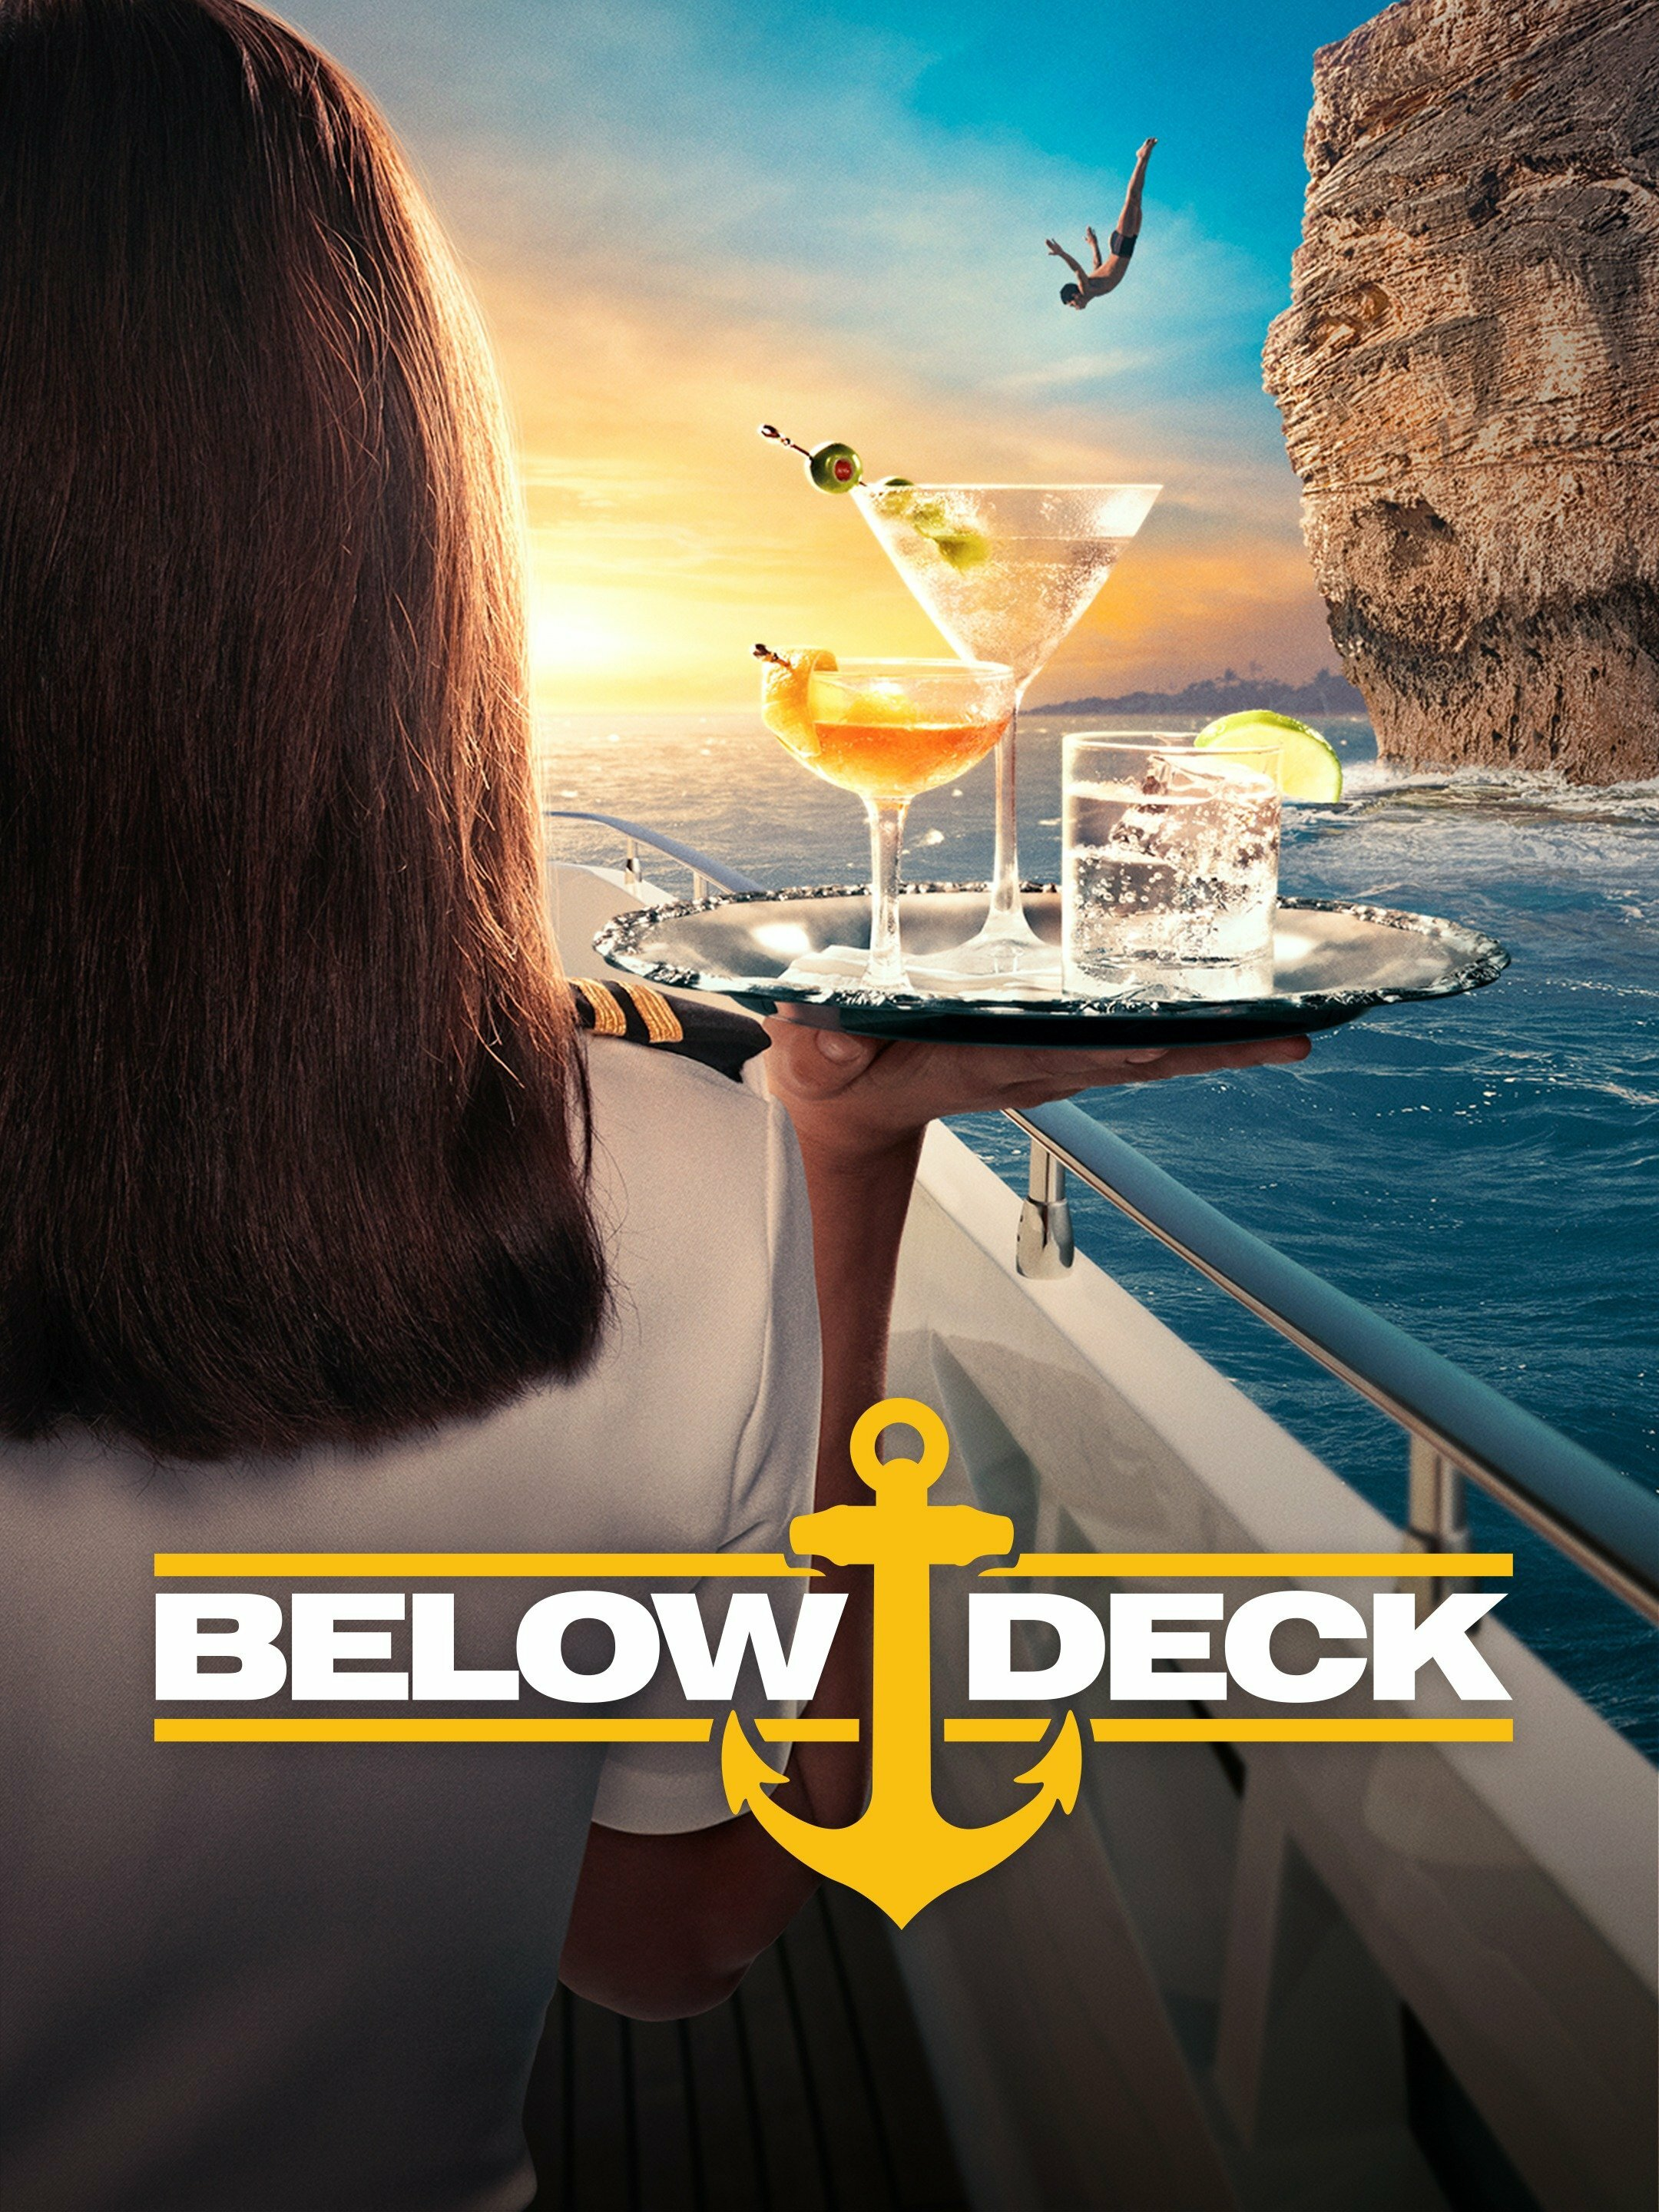 Below Deck ne zaman